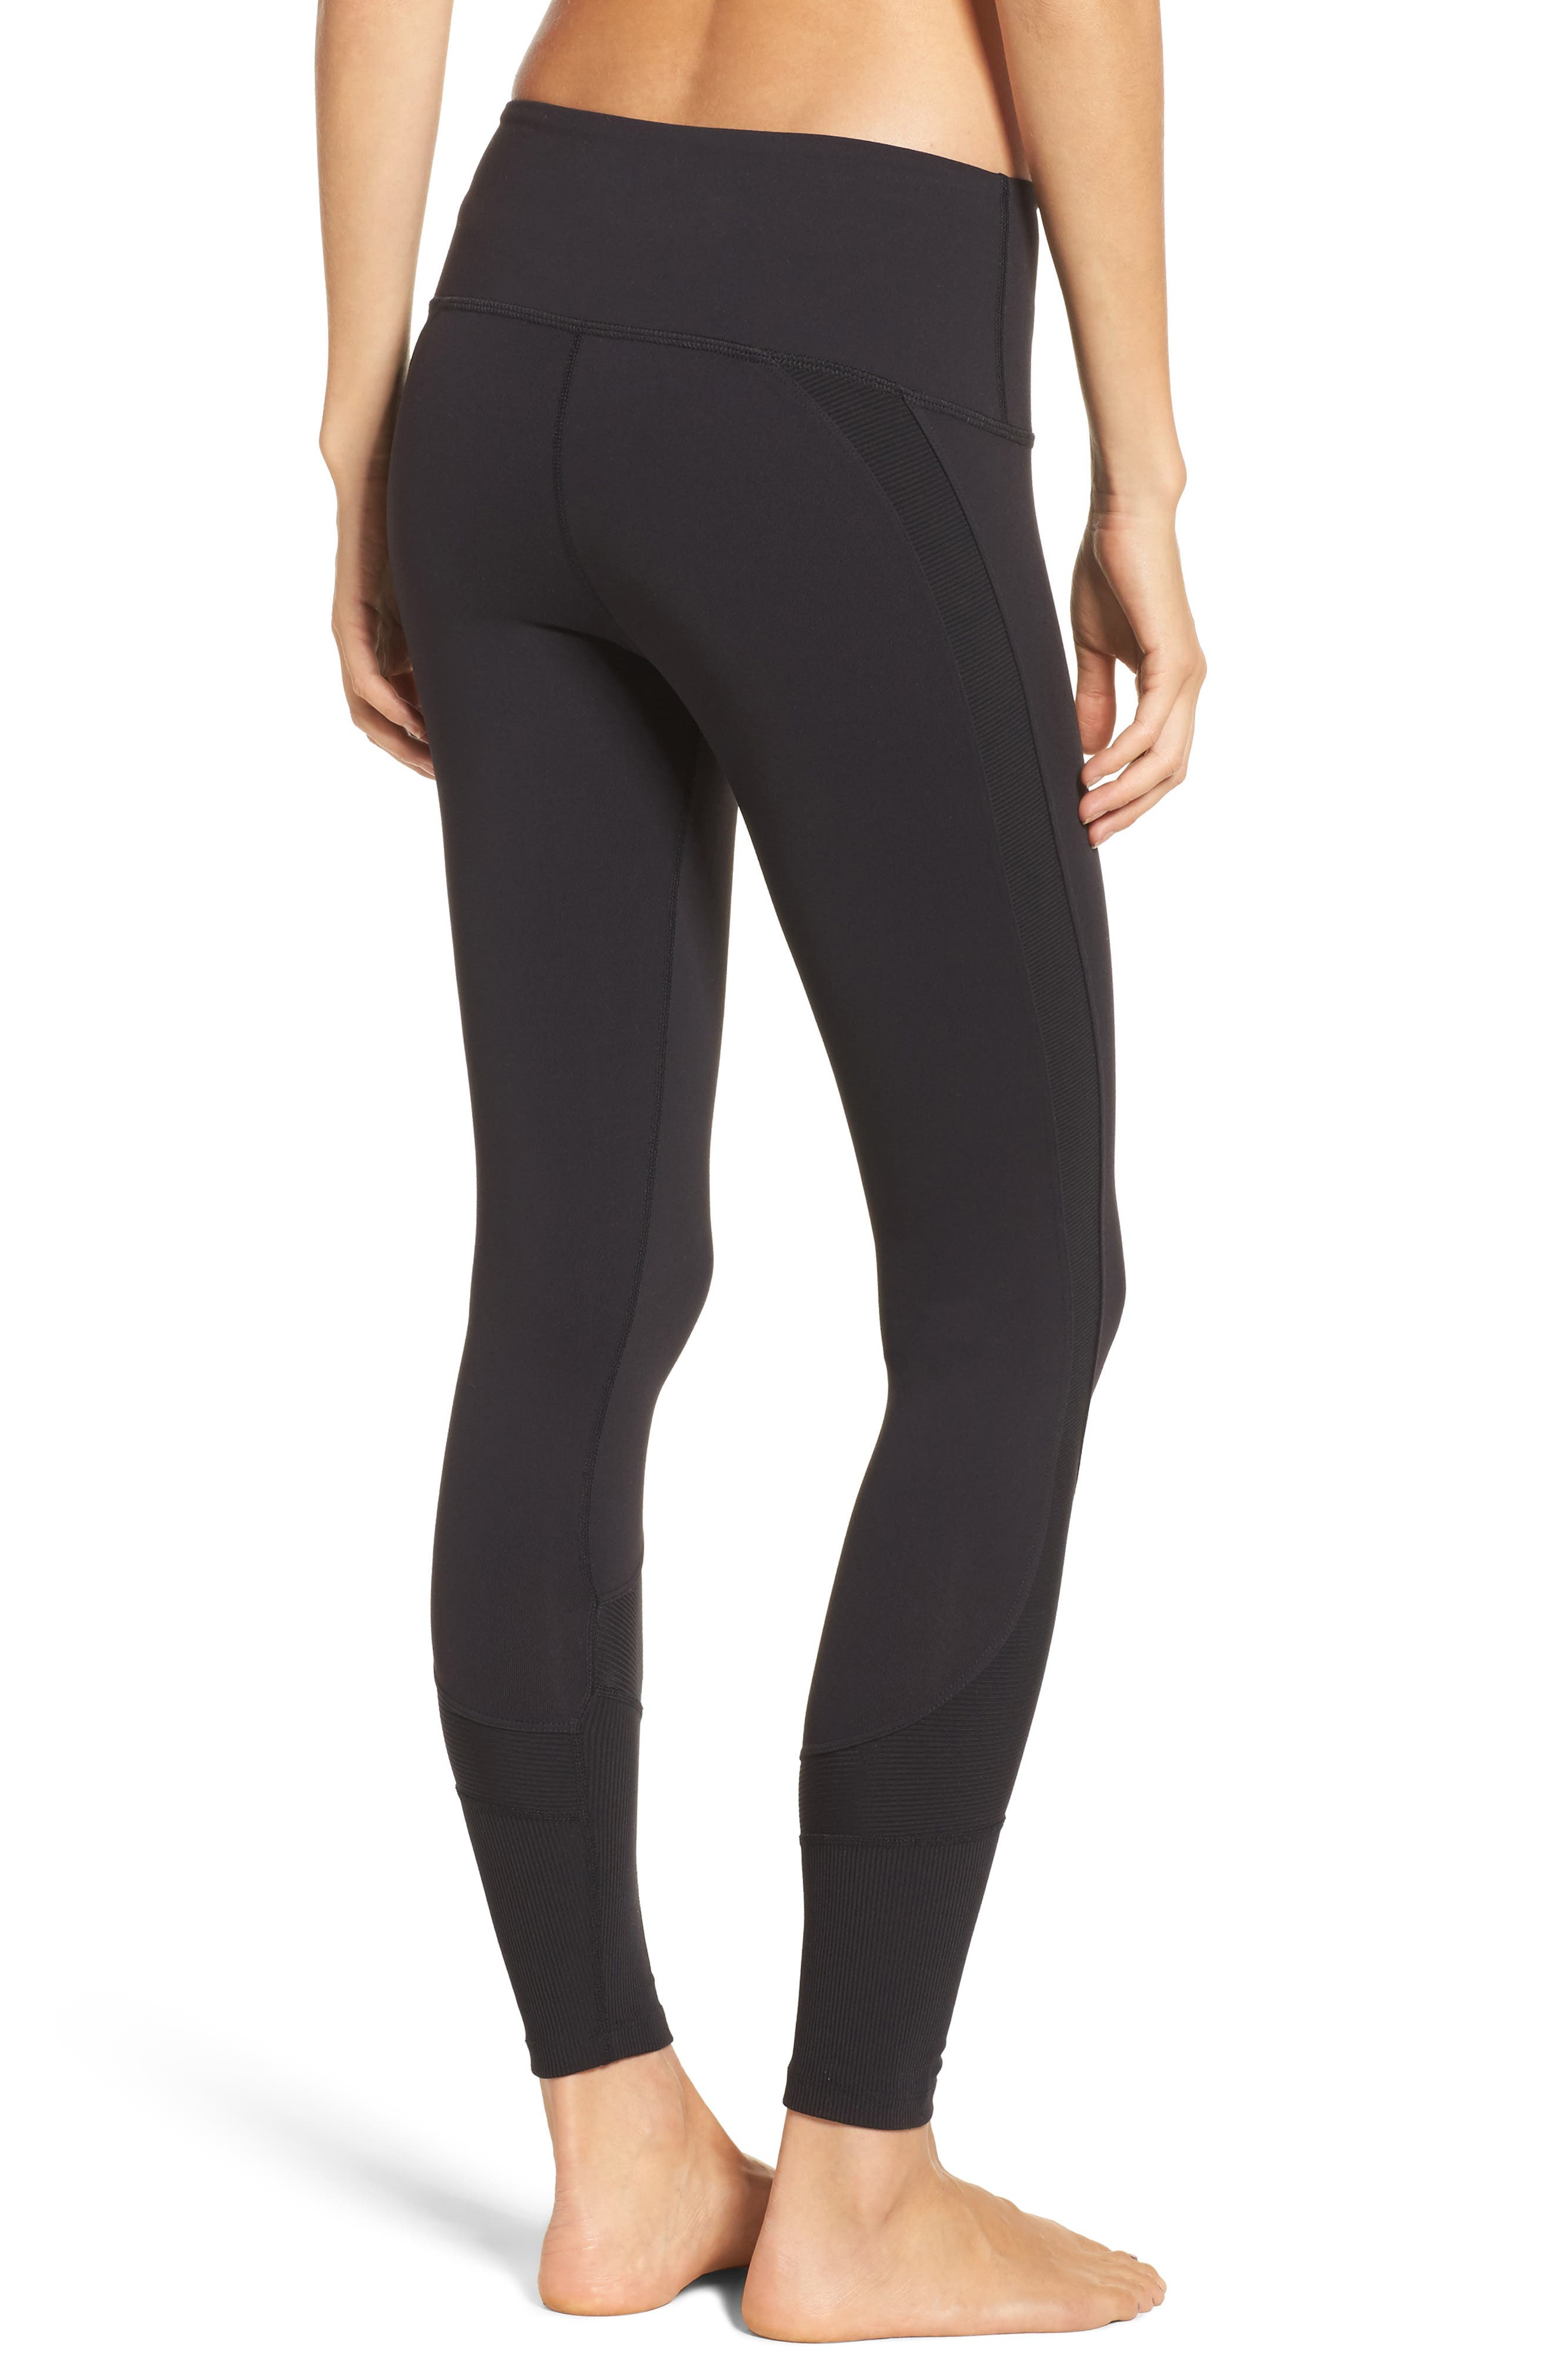 Half Pipe High Waist Tights,                             Alternate thumbnail 2, color,                             001